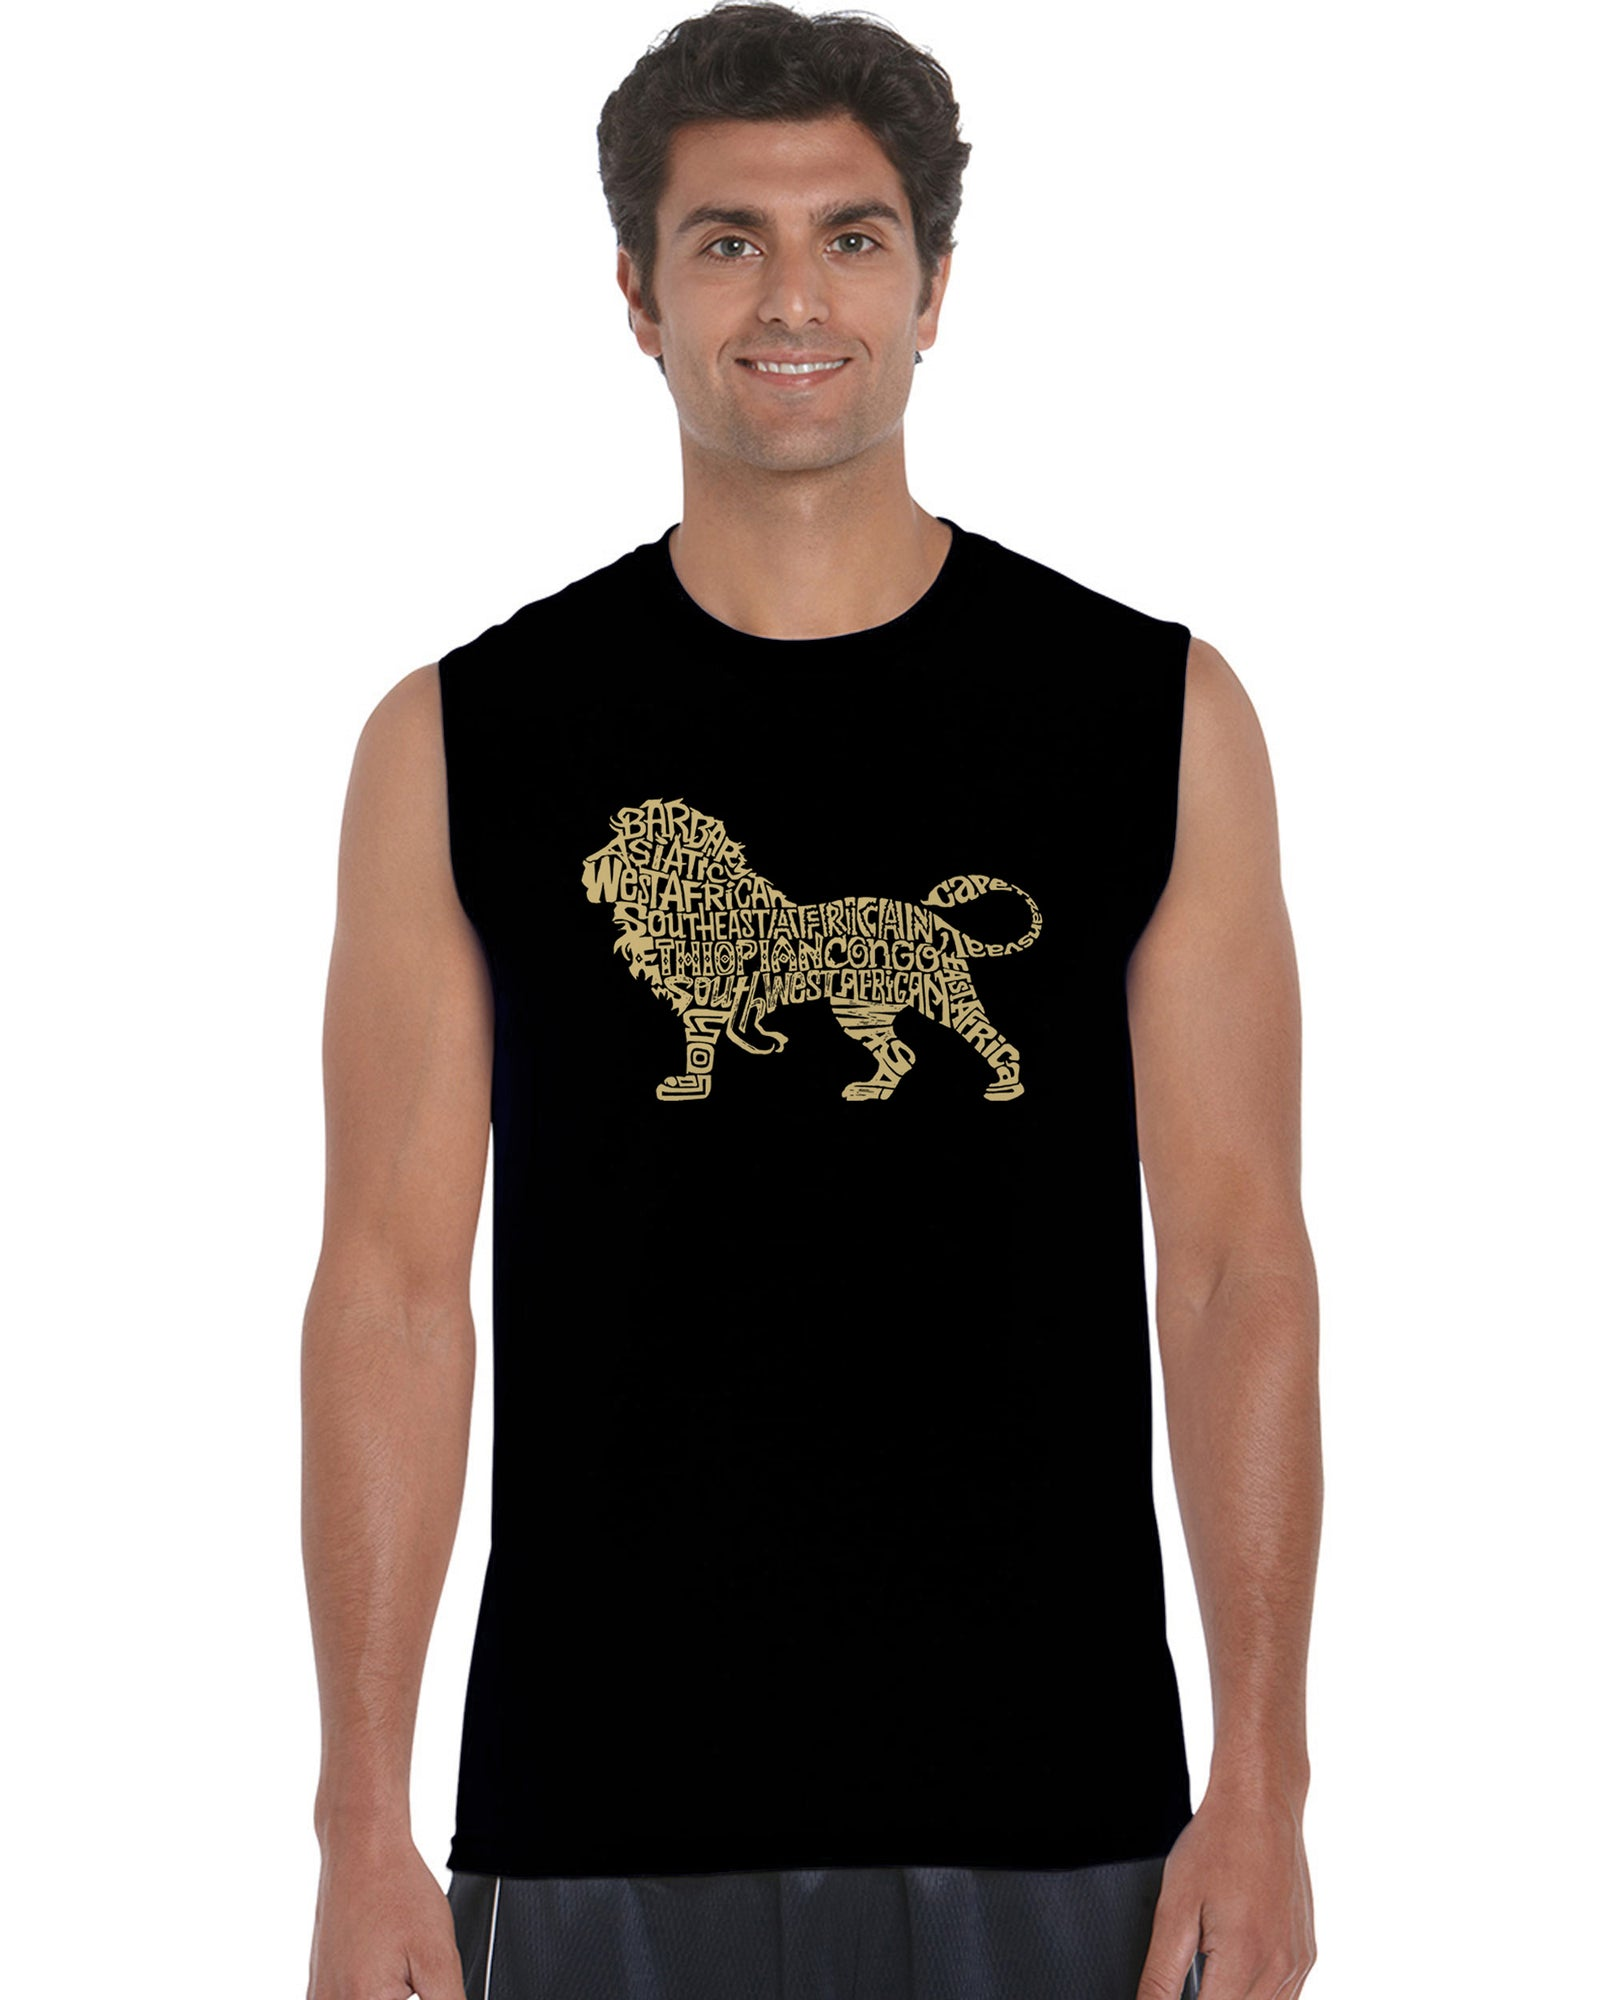 Men's Word Art Sleeveless T-shirt - Lion